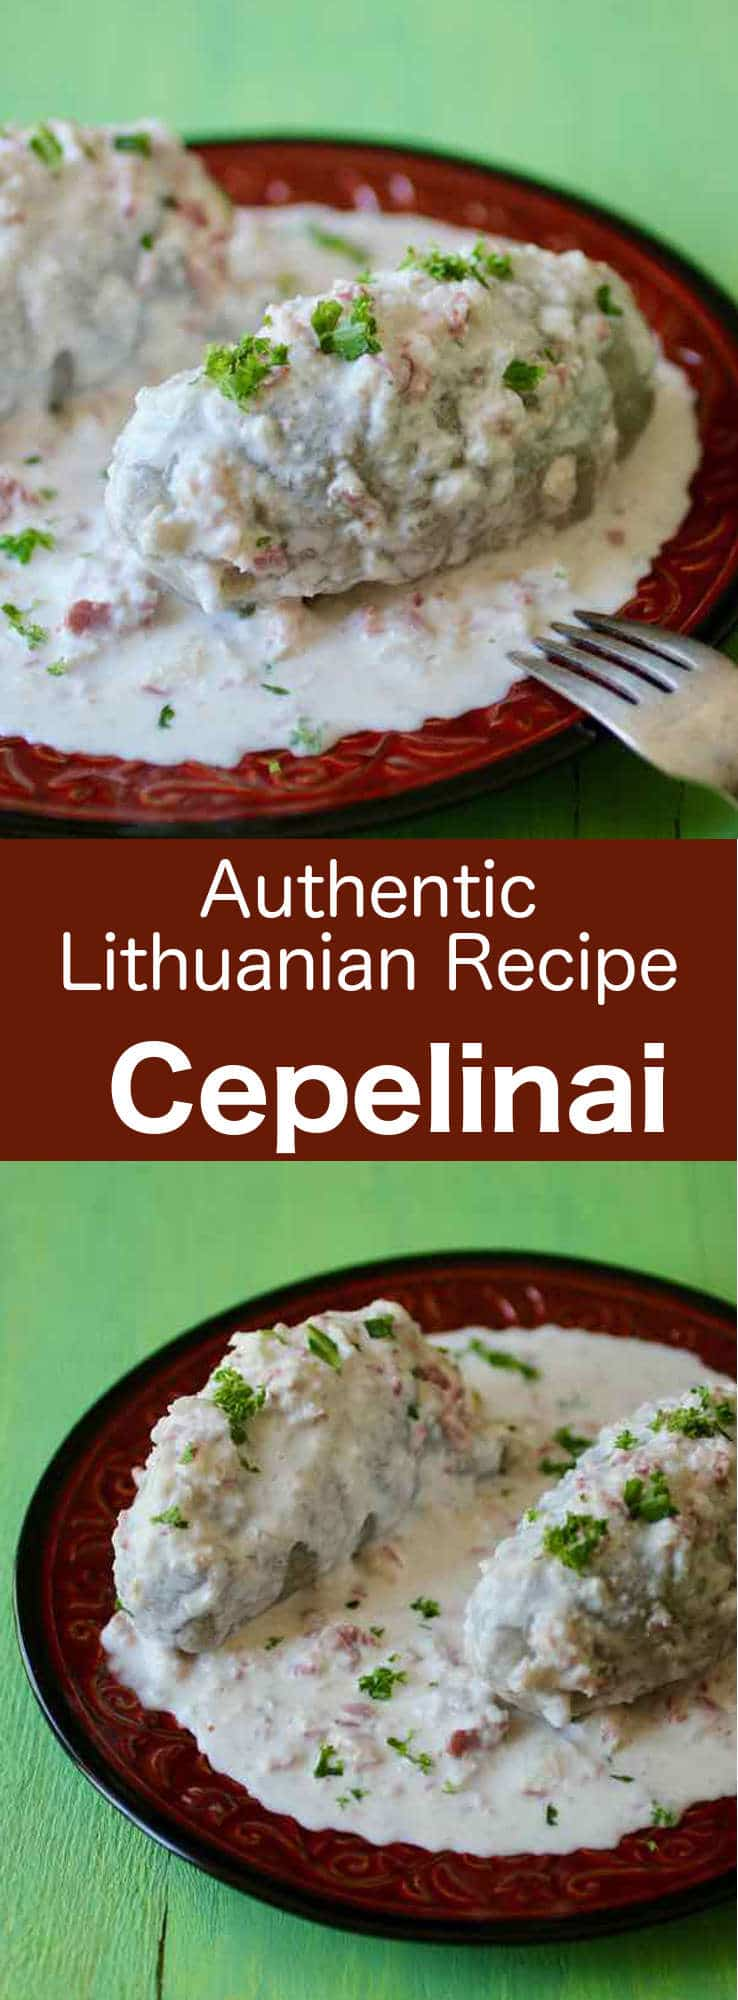 Cepelinai are dumplings made from potatoes and usually stuffed with ground meat, or sometimes cheese curd or mushrooms.